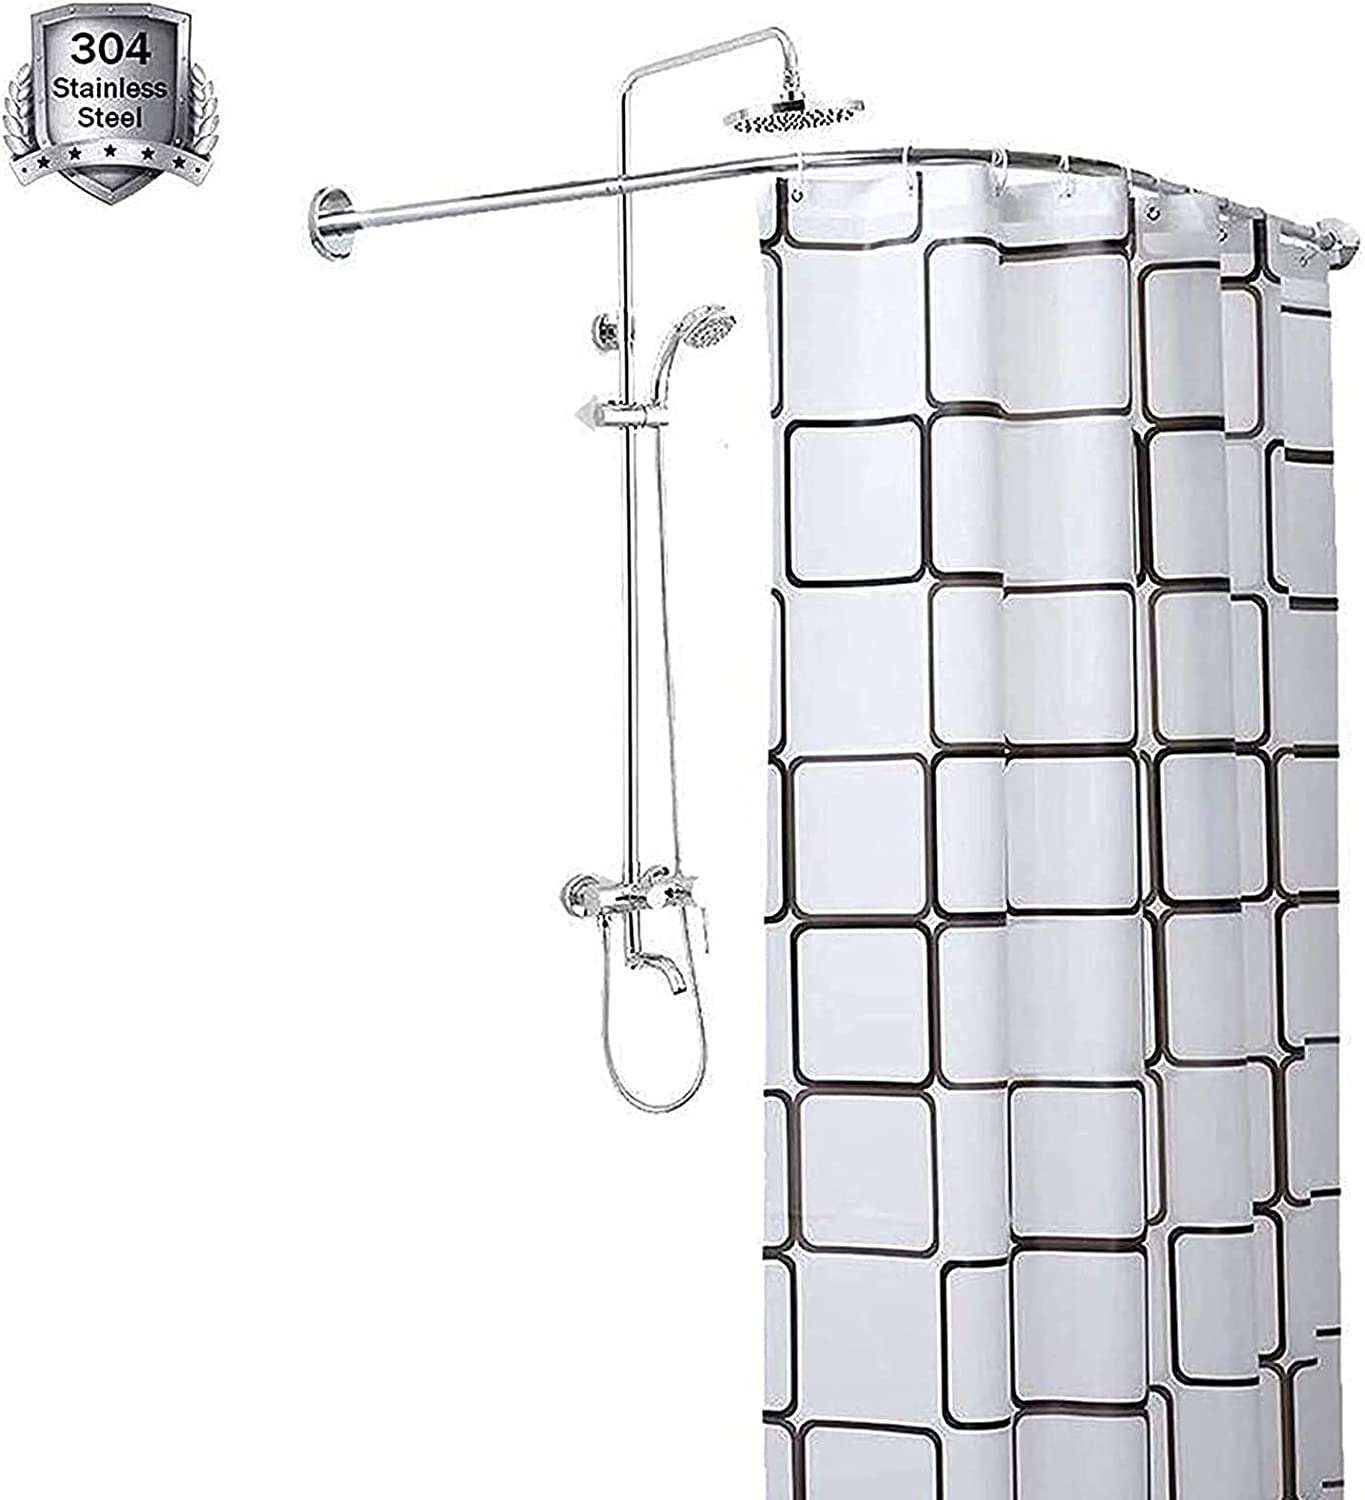 Max 48% OFF Shower Curtain Rod L Shape Telescopic Corner Industry No. 1 Steel Stainless Co